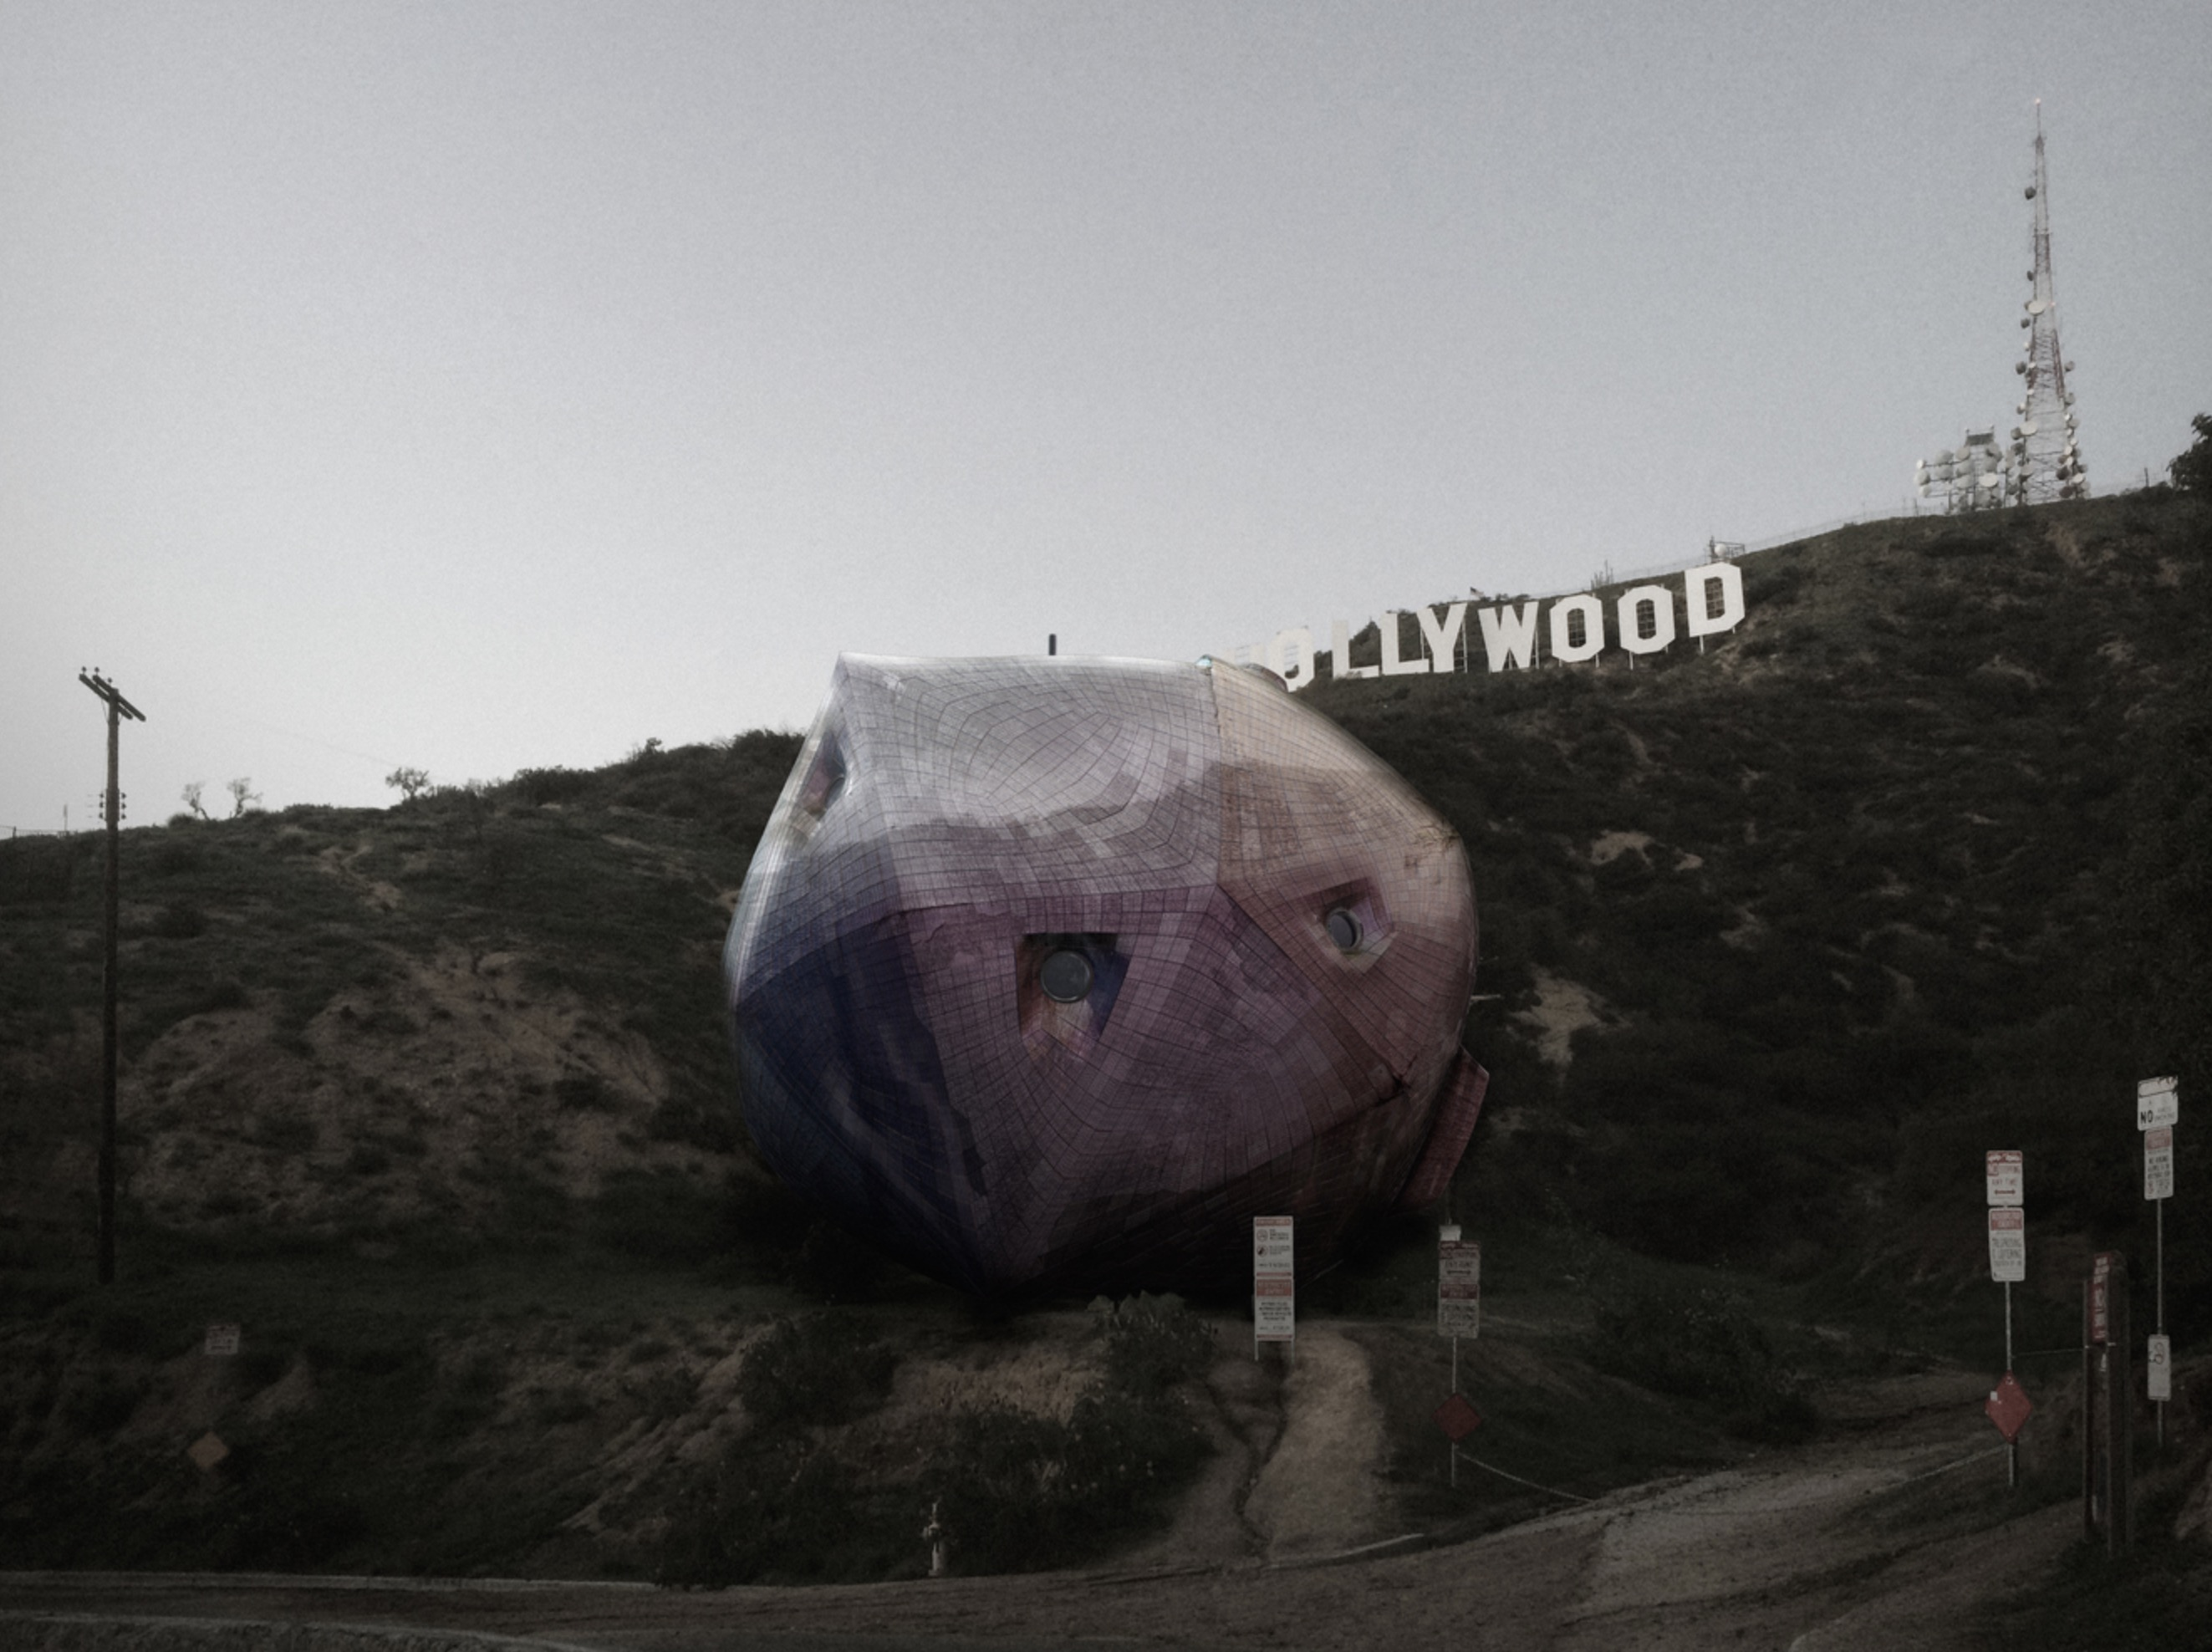 A new home for the Hollywood sign?